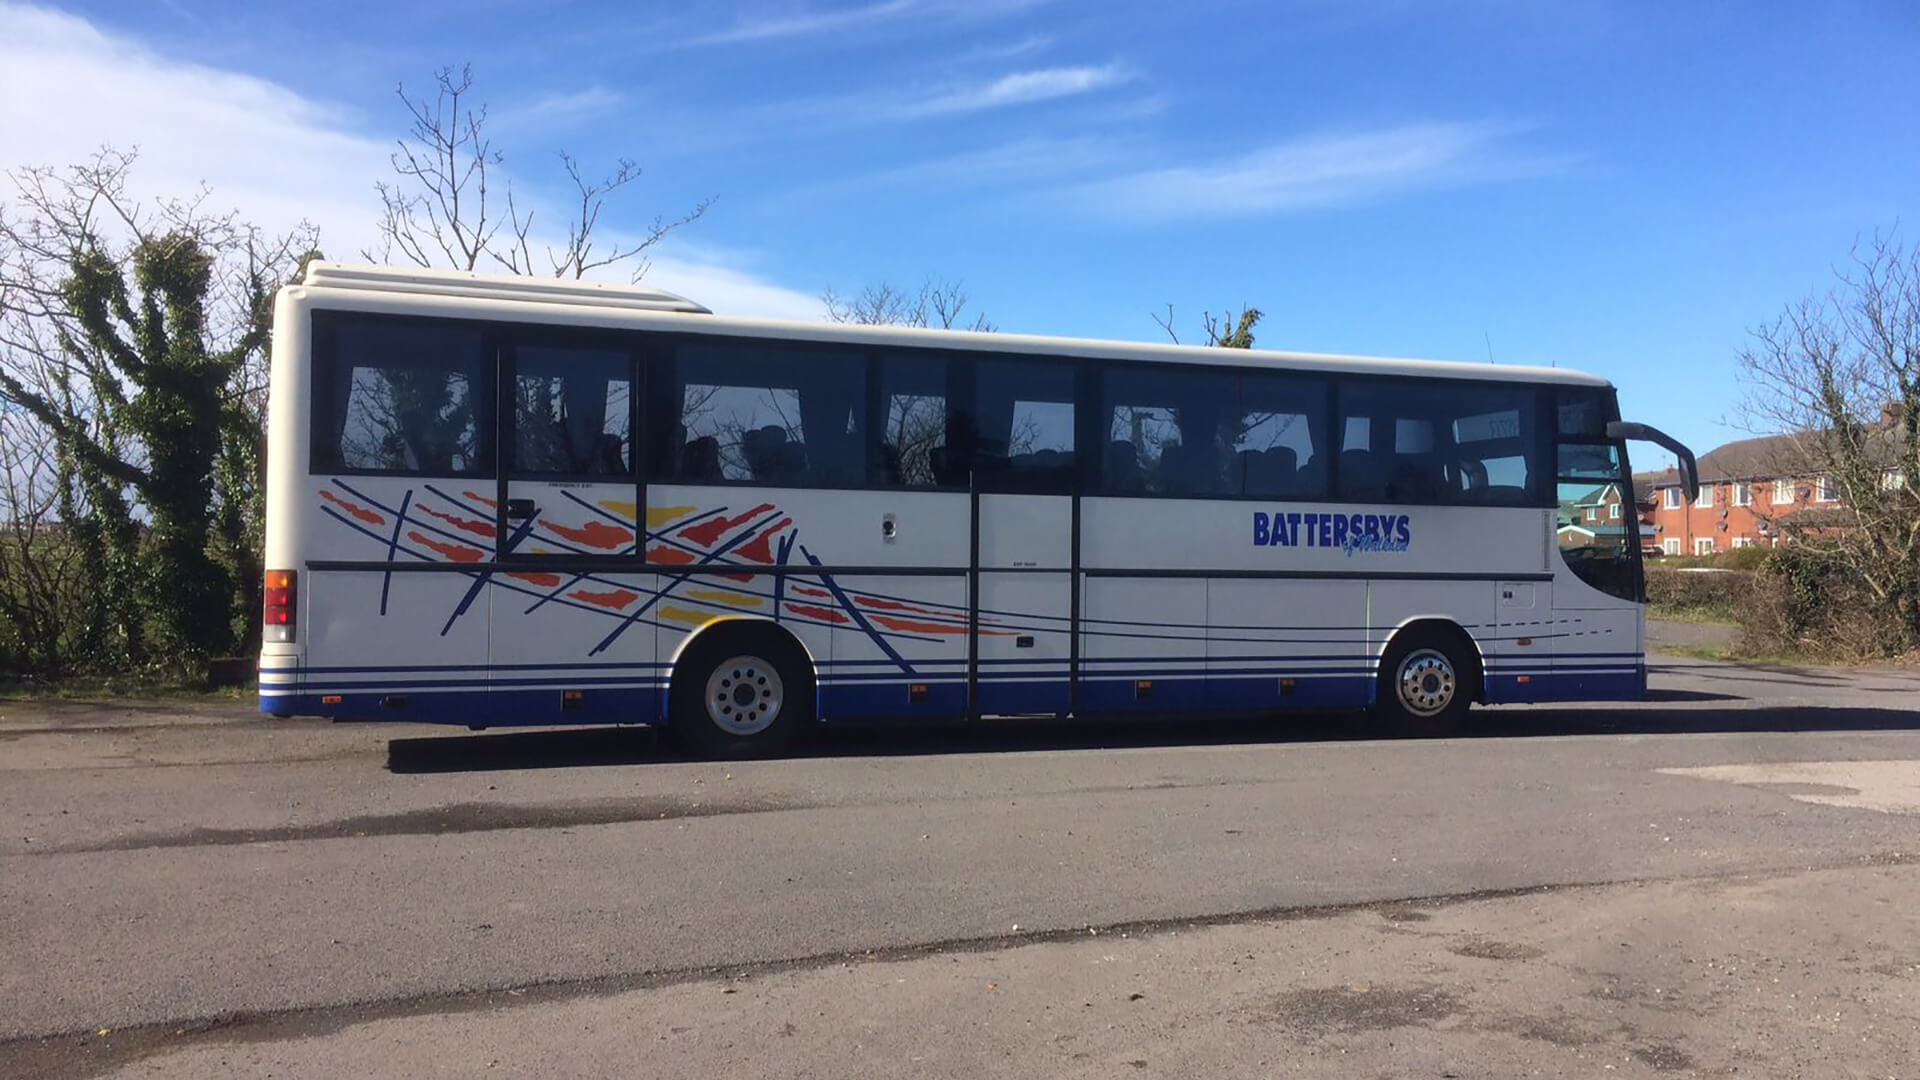 battersbys_coaches_walkden_coach_hire_manchester_bolton_worsley_introduction-1-mobile